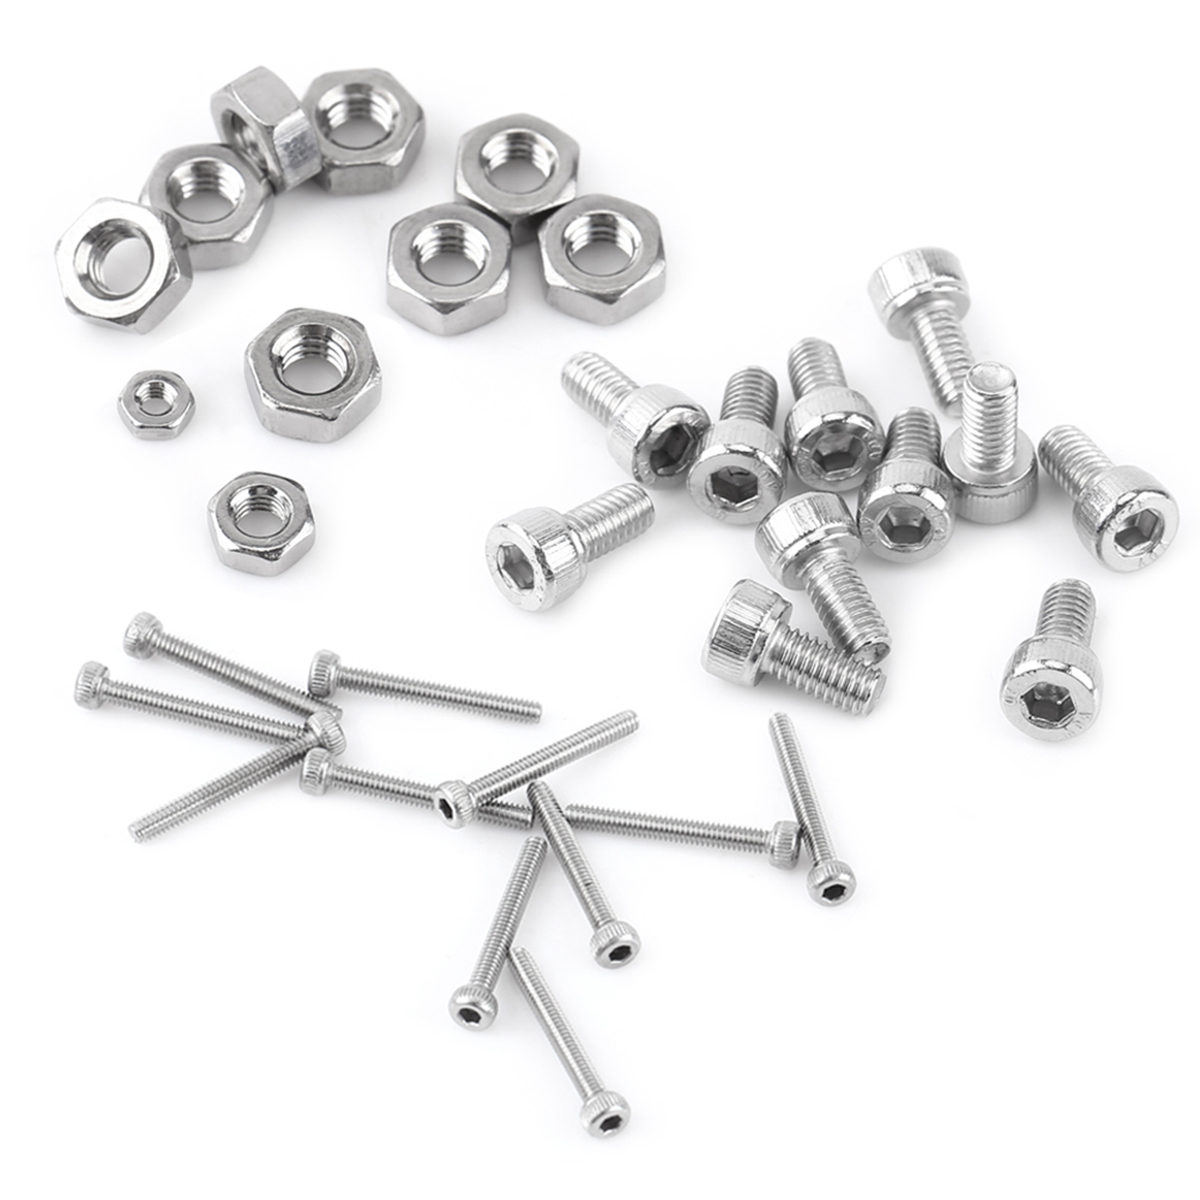 480pcs Hex Socket Head Cap Screws M2 M3 M4 Stainless Steel Nut Assortment Kit Set With Platic Box 60pcs box stainless steel m4 screw kits hex socket head cap screws m4 6 8 12 16 20 25mm fastener assortment kit hardware tools